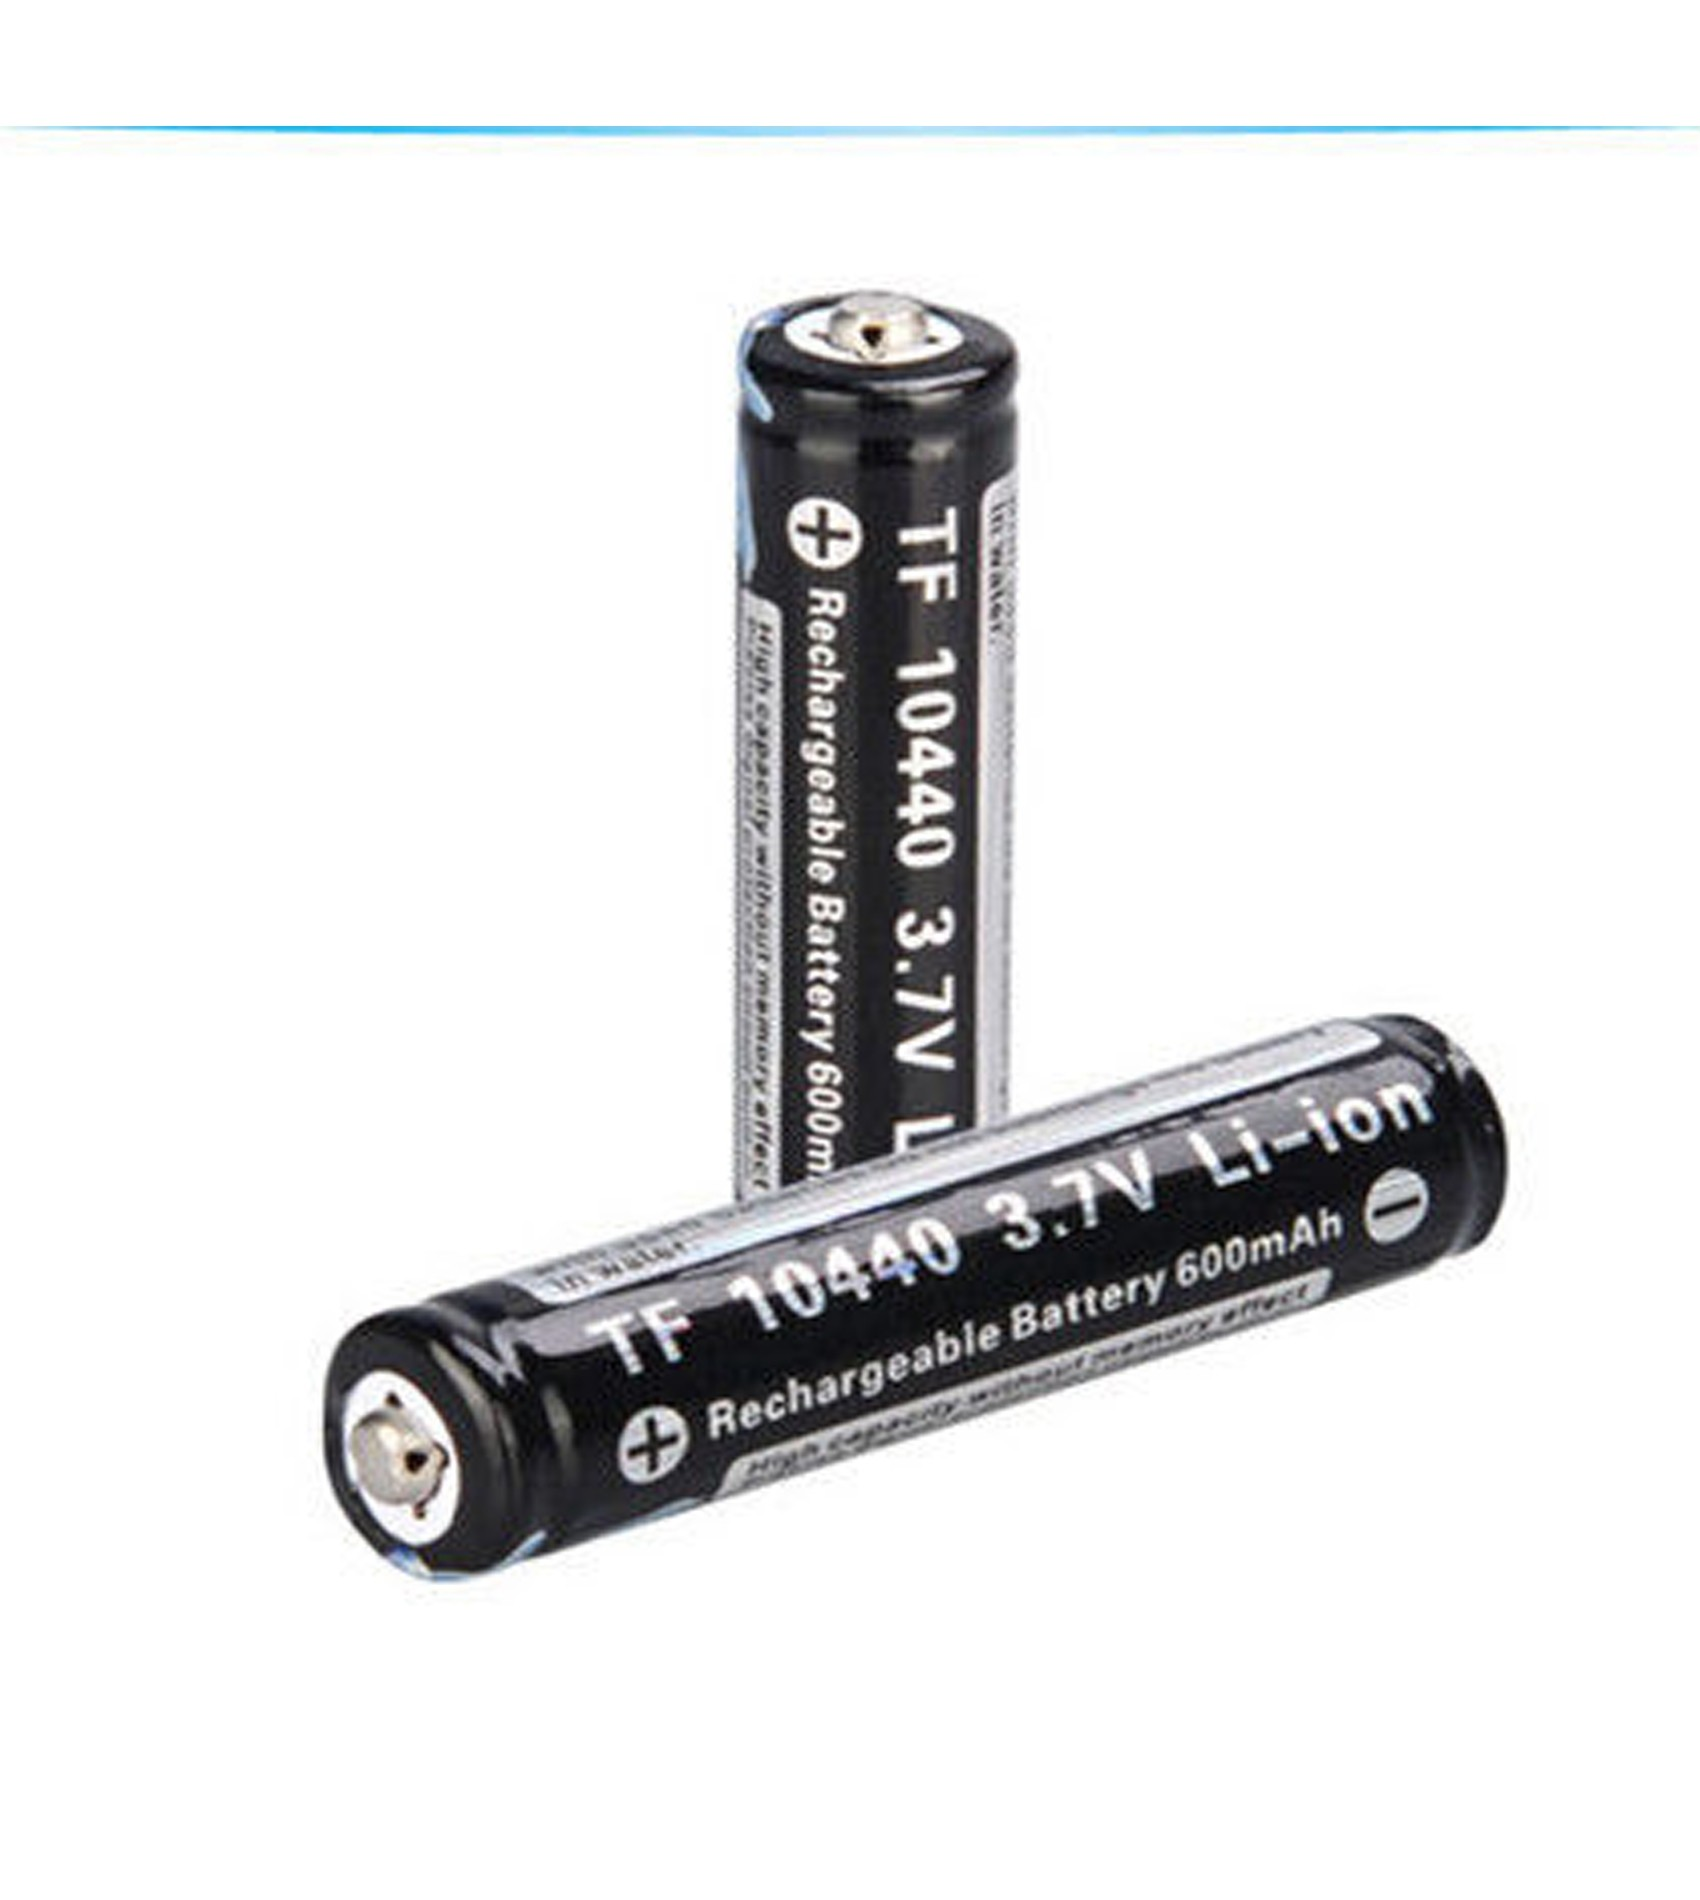 TrustFire 600mAh 10440 Rechargeable 3.7V Li-ion Battery For LED Flashlights